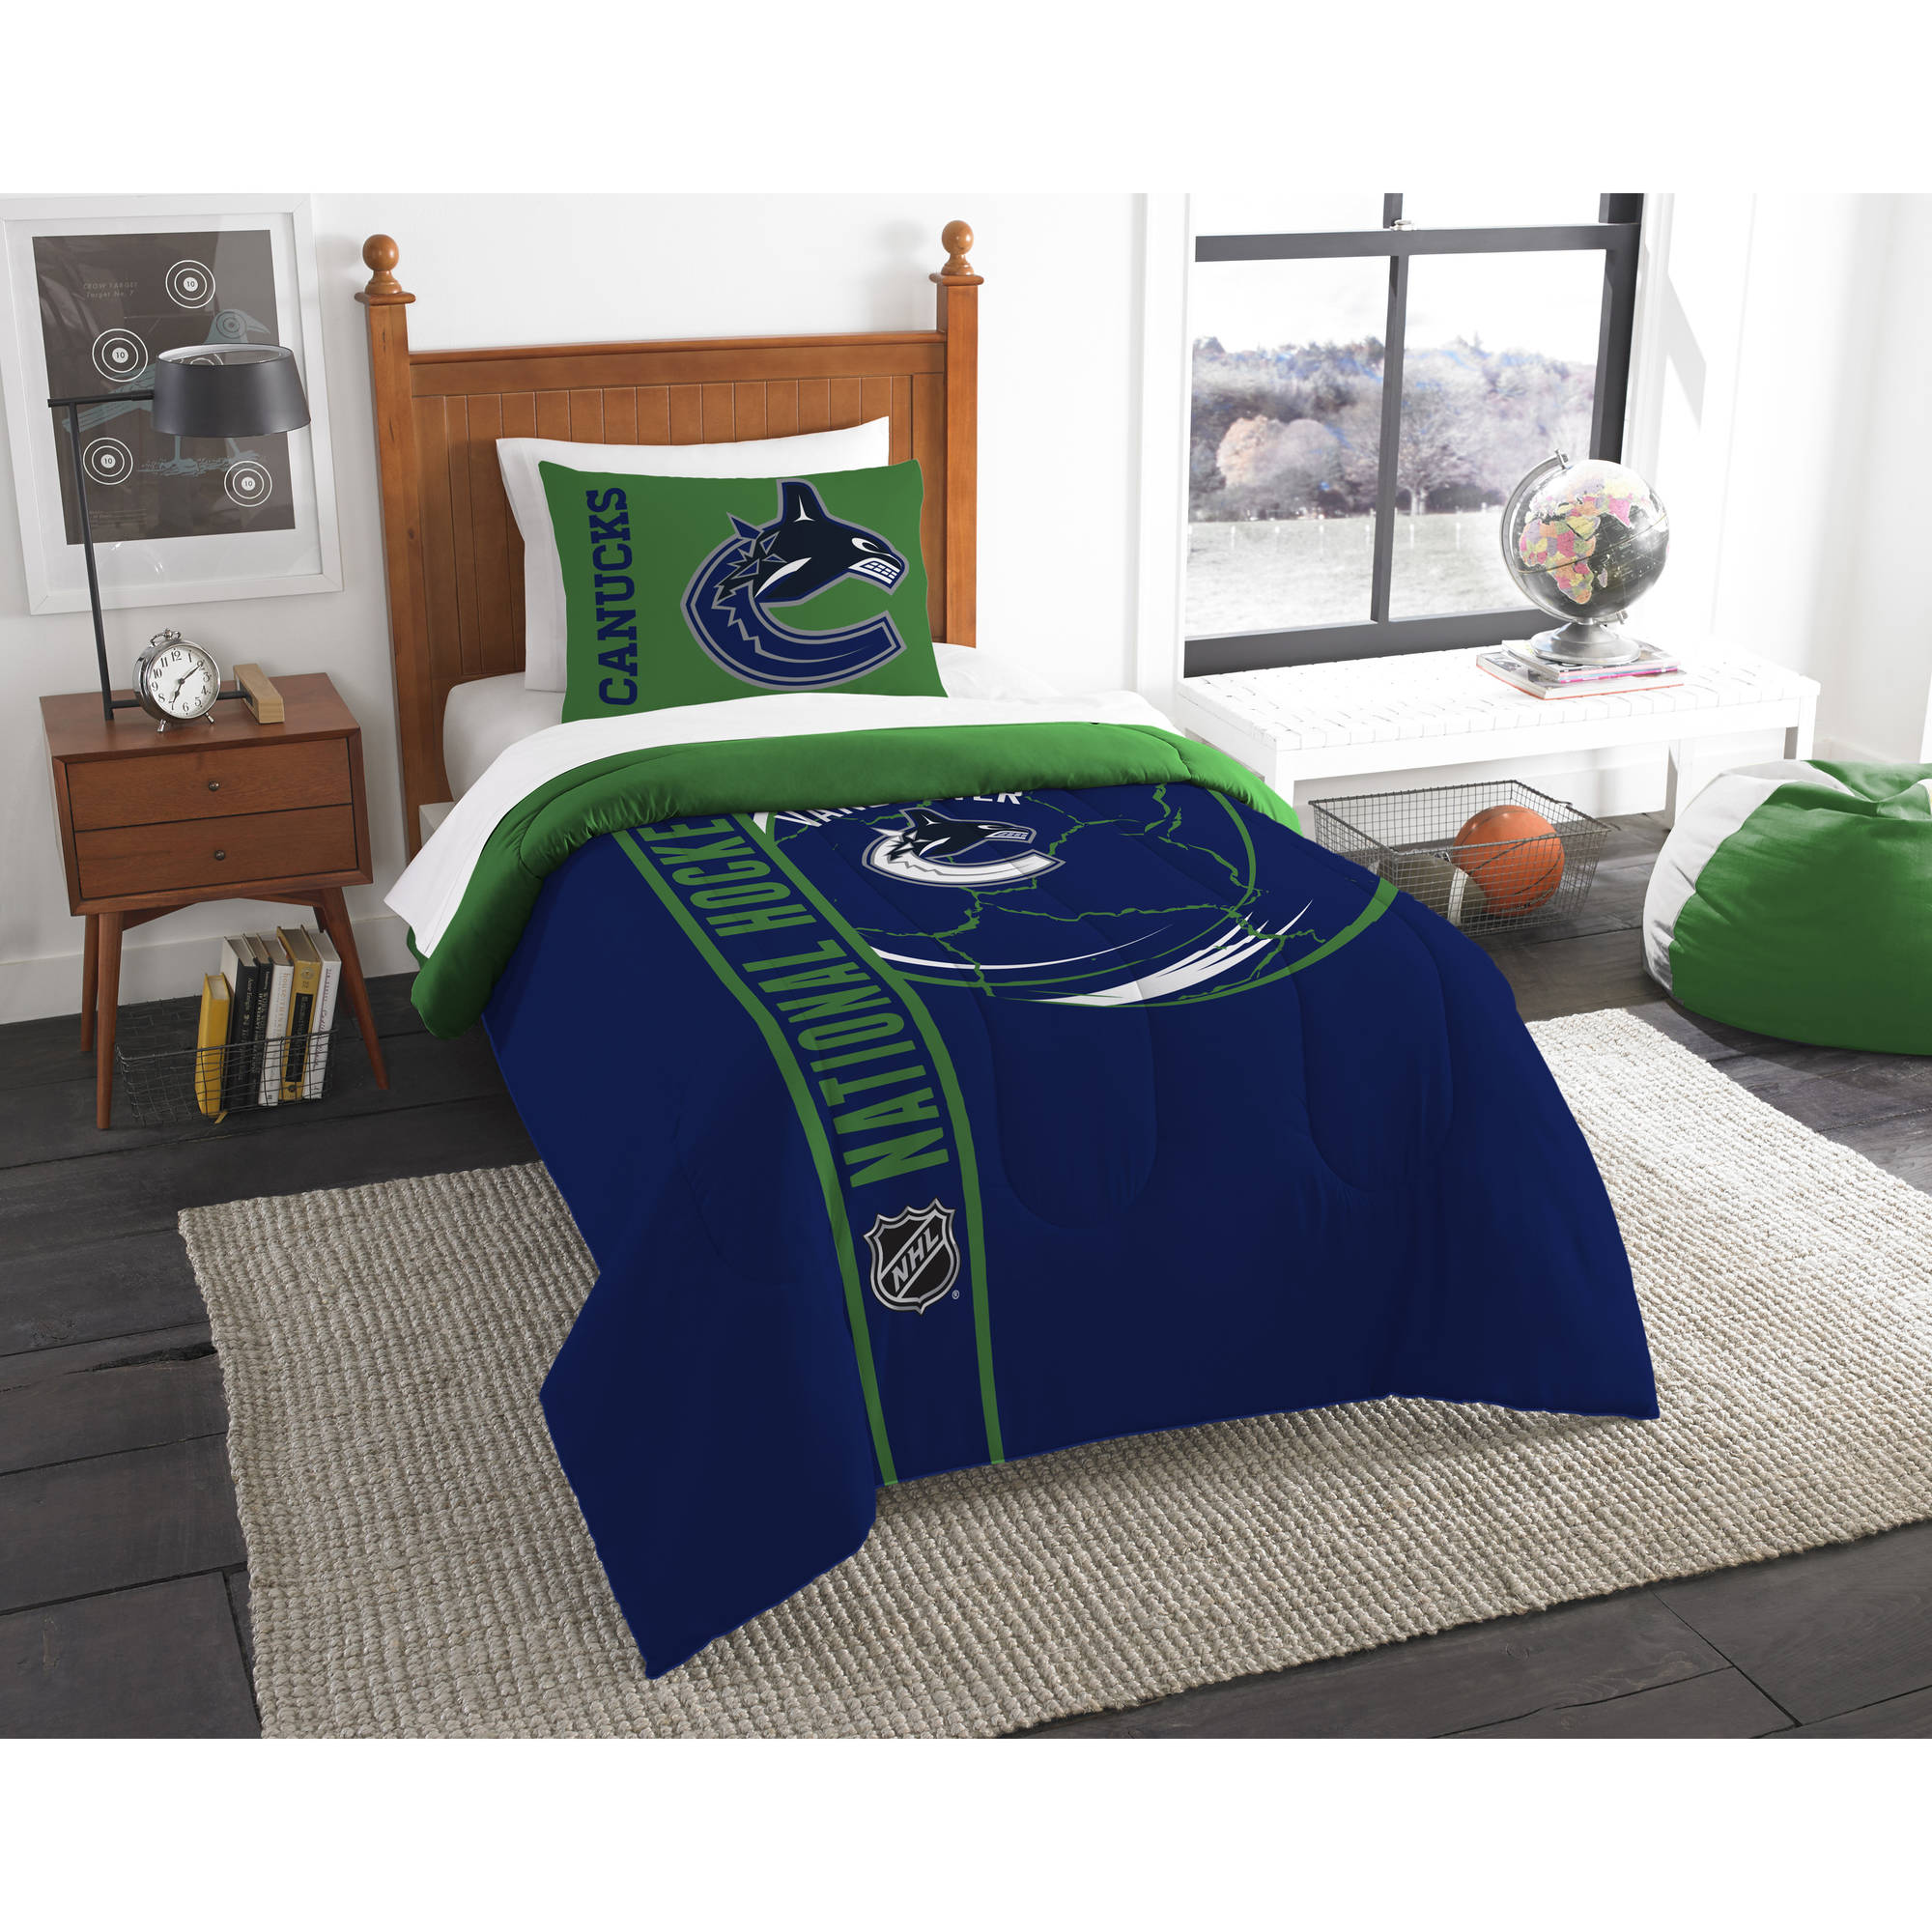 NHL Vancouver Canucks Printed Twin Comforter and Sham Set